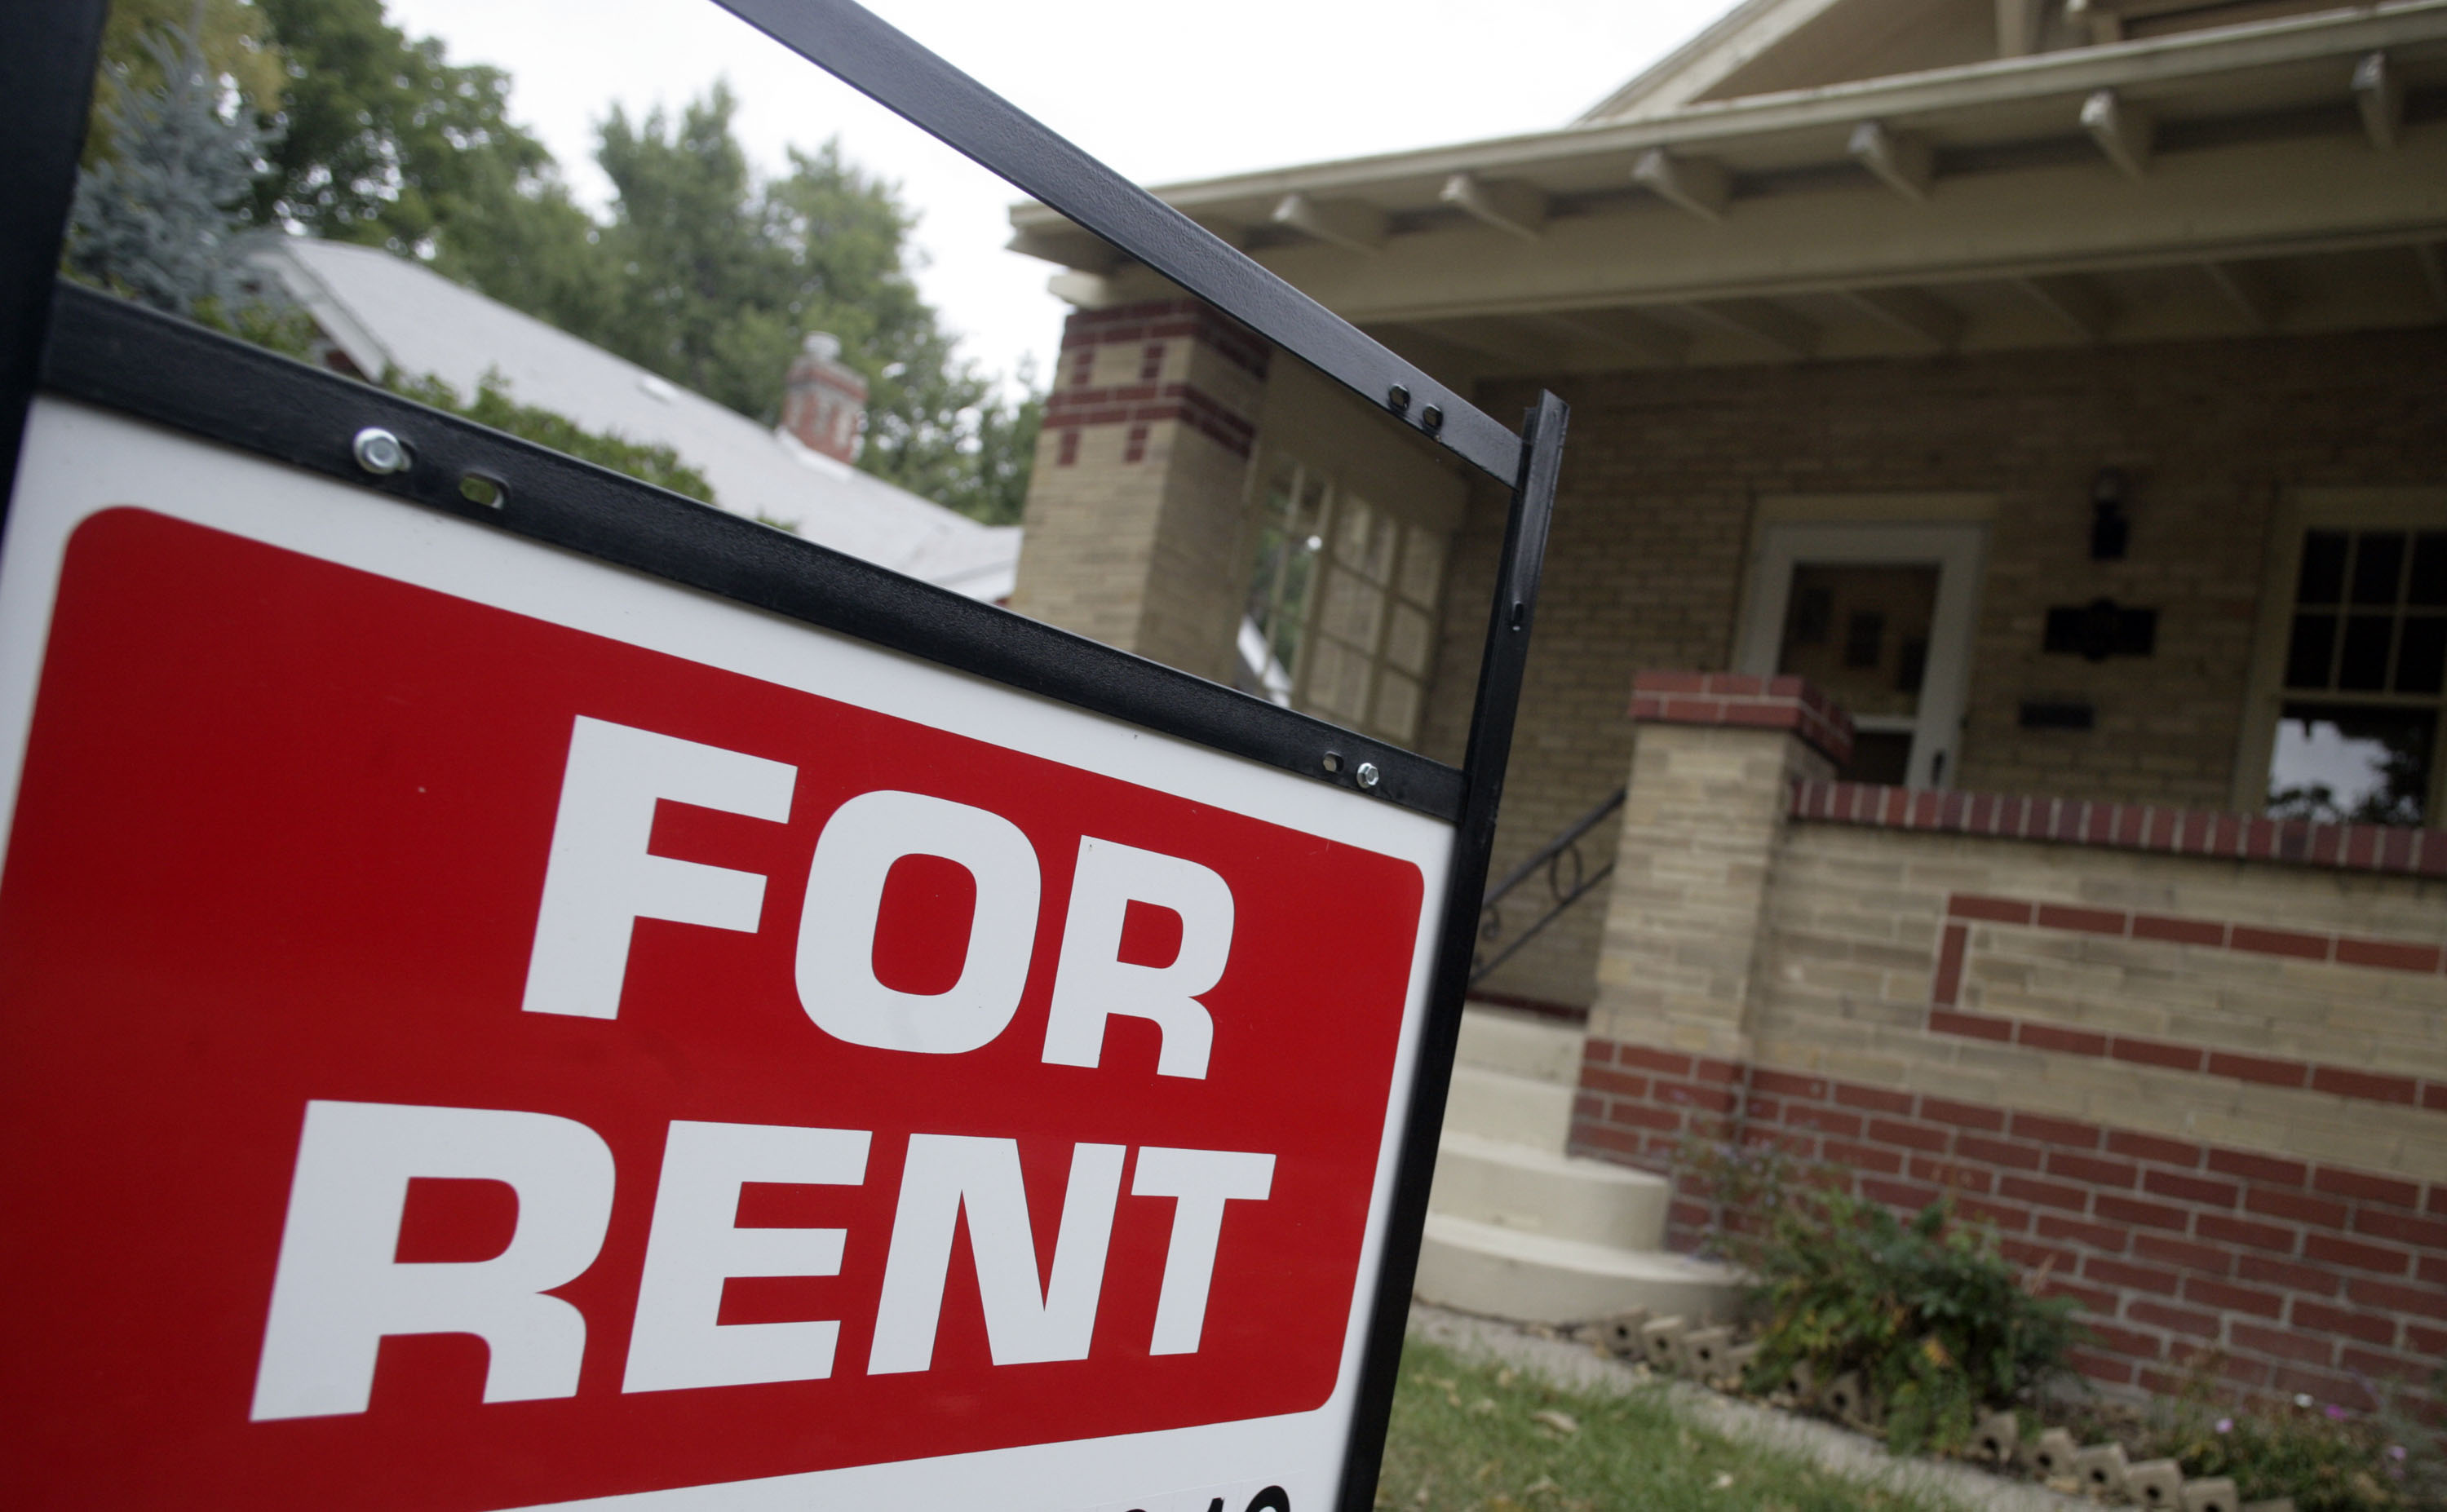 Photo: For rent sign (AP Photo)